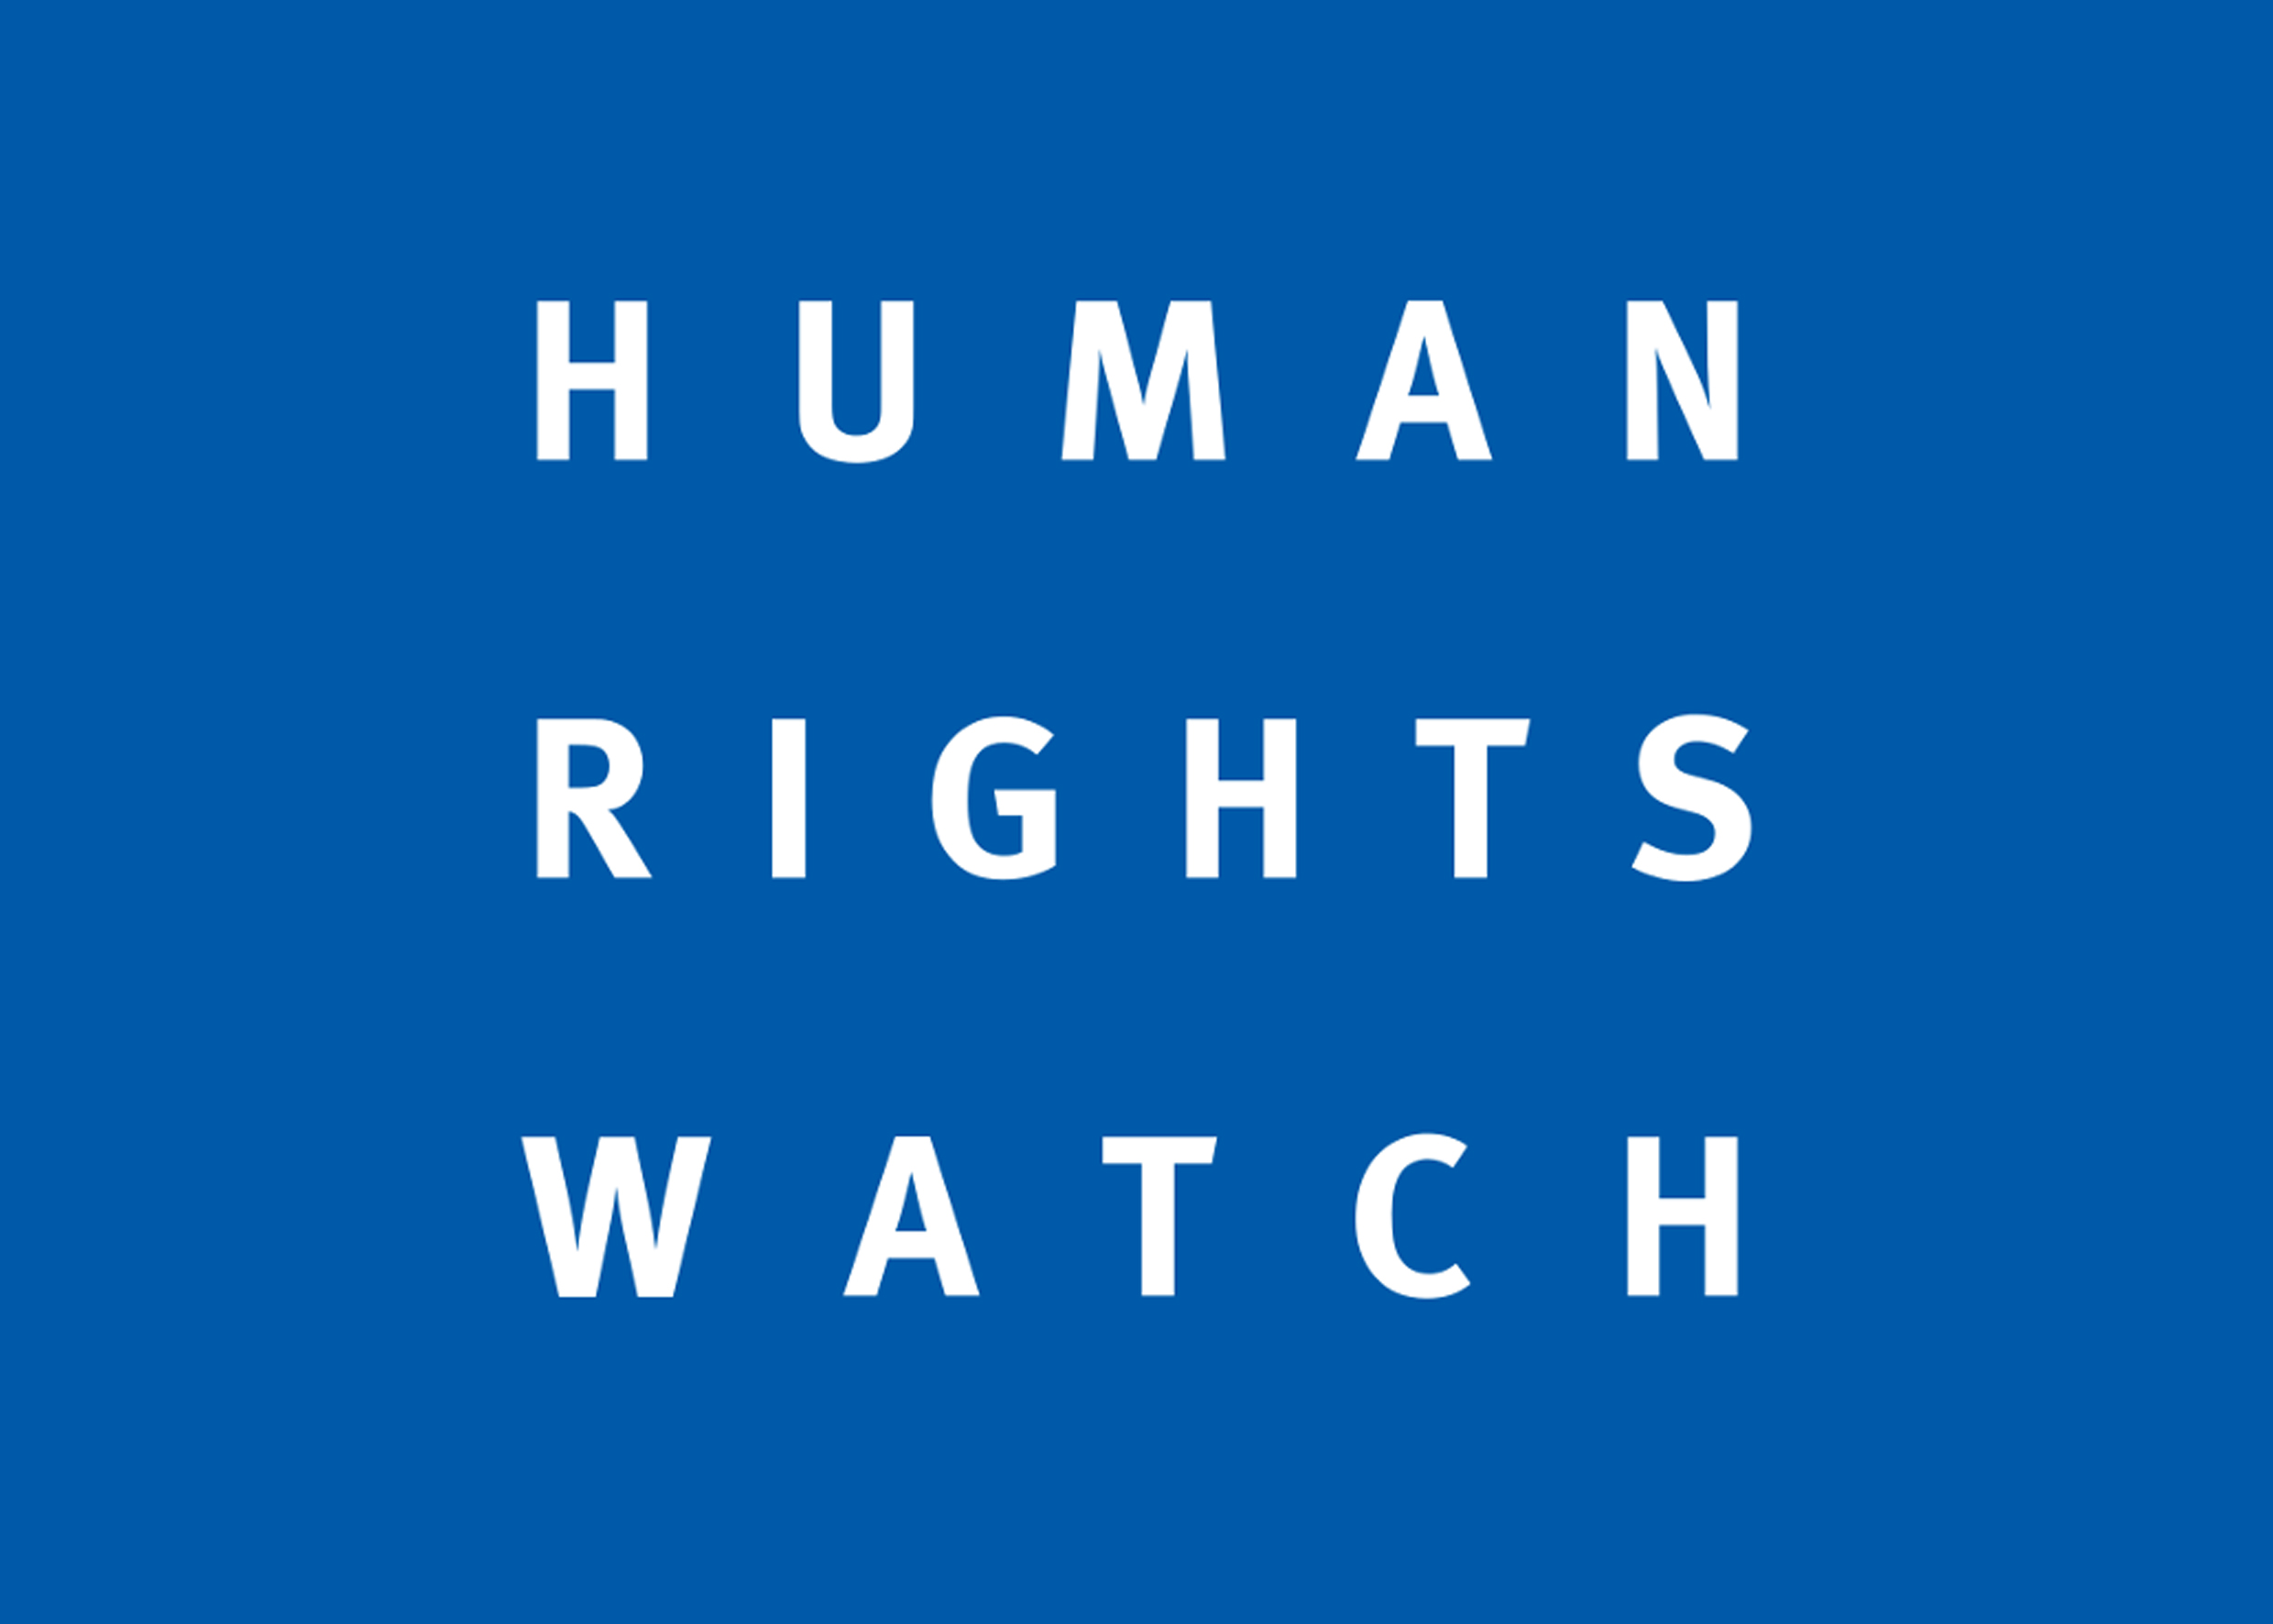 Хьюман Райтс Вотч (Human Rights Watch)